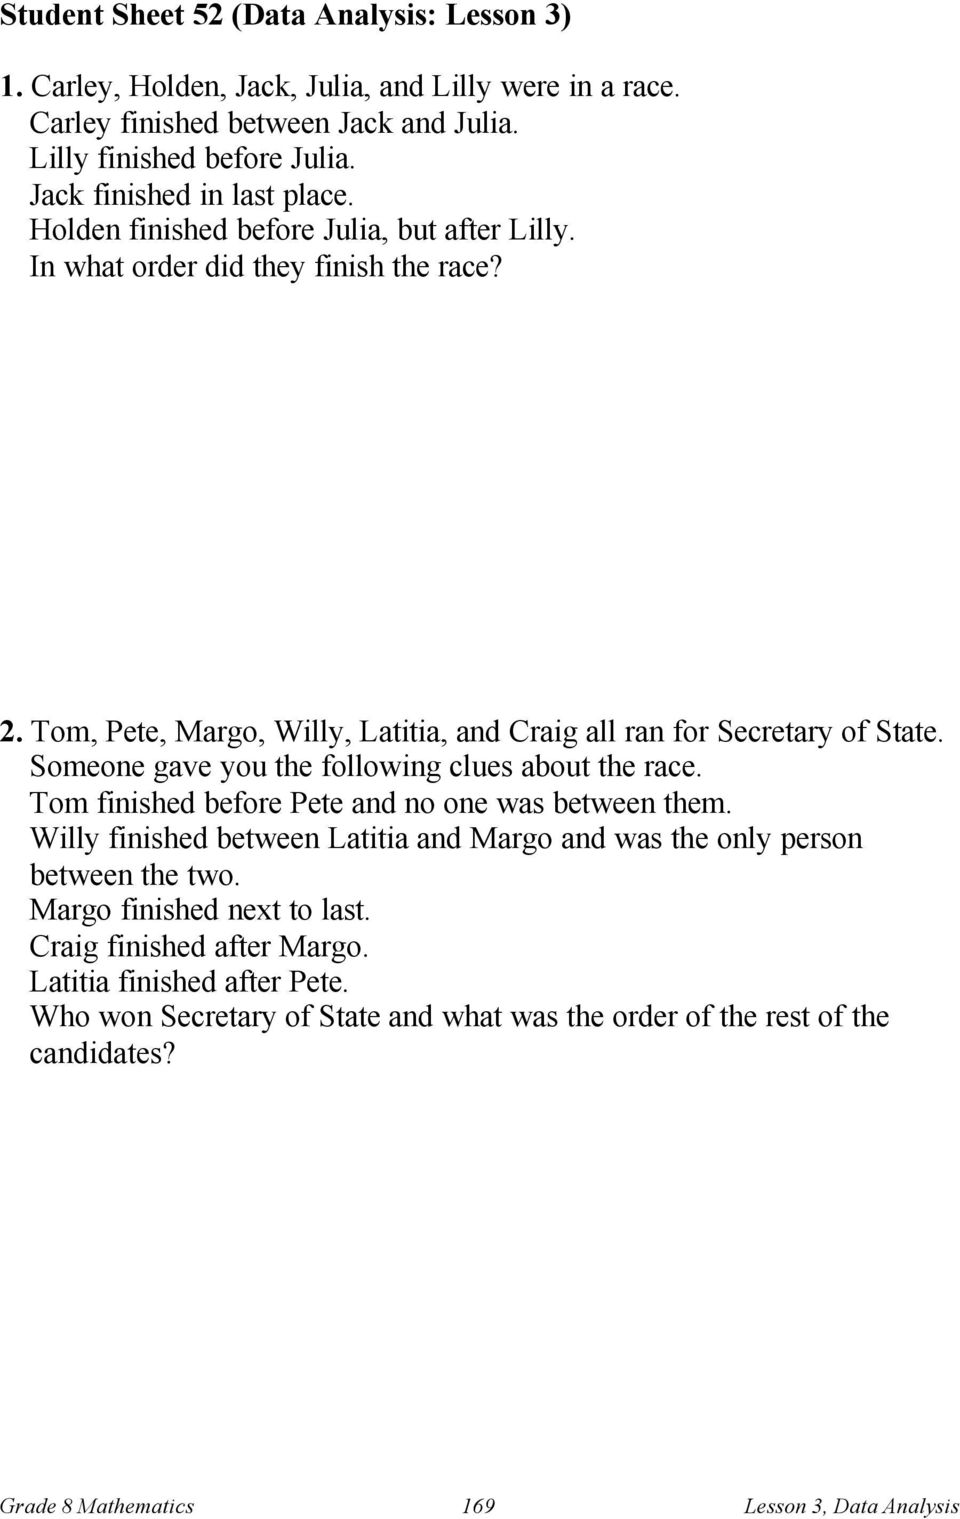 Tom, Pete, Margo, Willy, Latitia, and Craig all ran for Secretary of State. Someone gave you the following clues about the race. Tom finished before Pete and no one was between them.